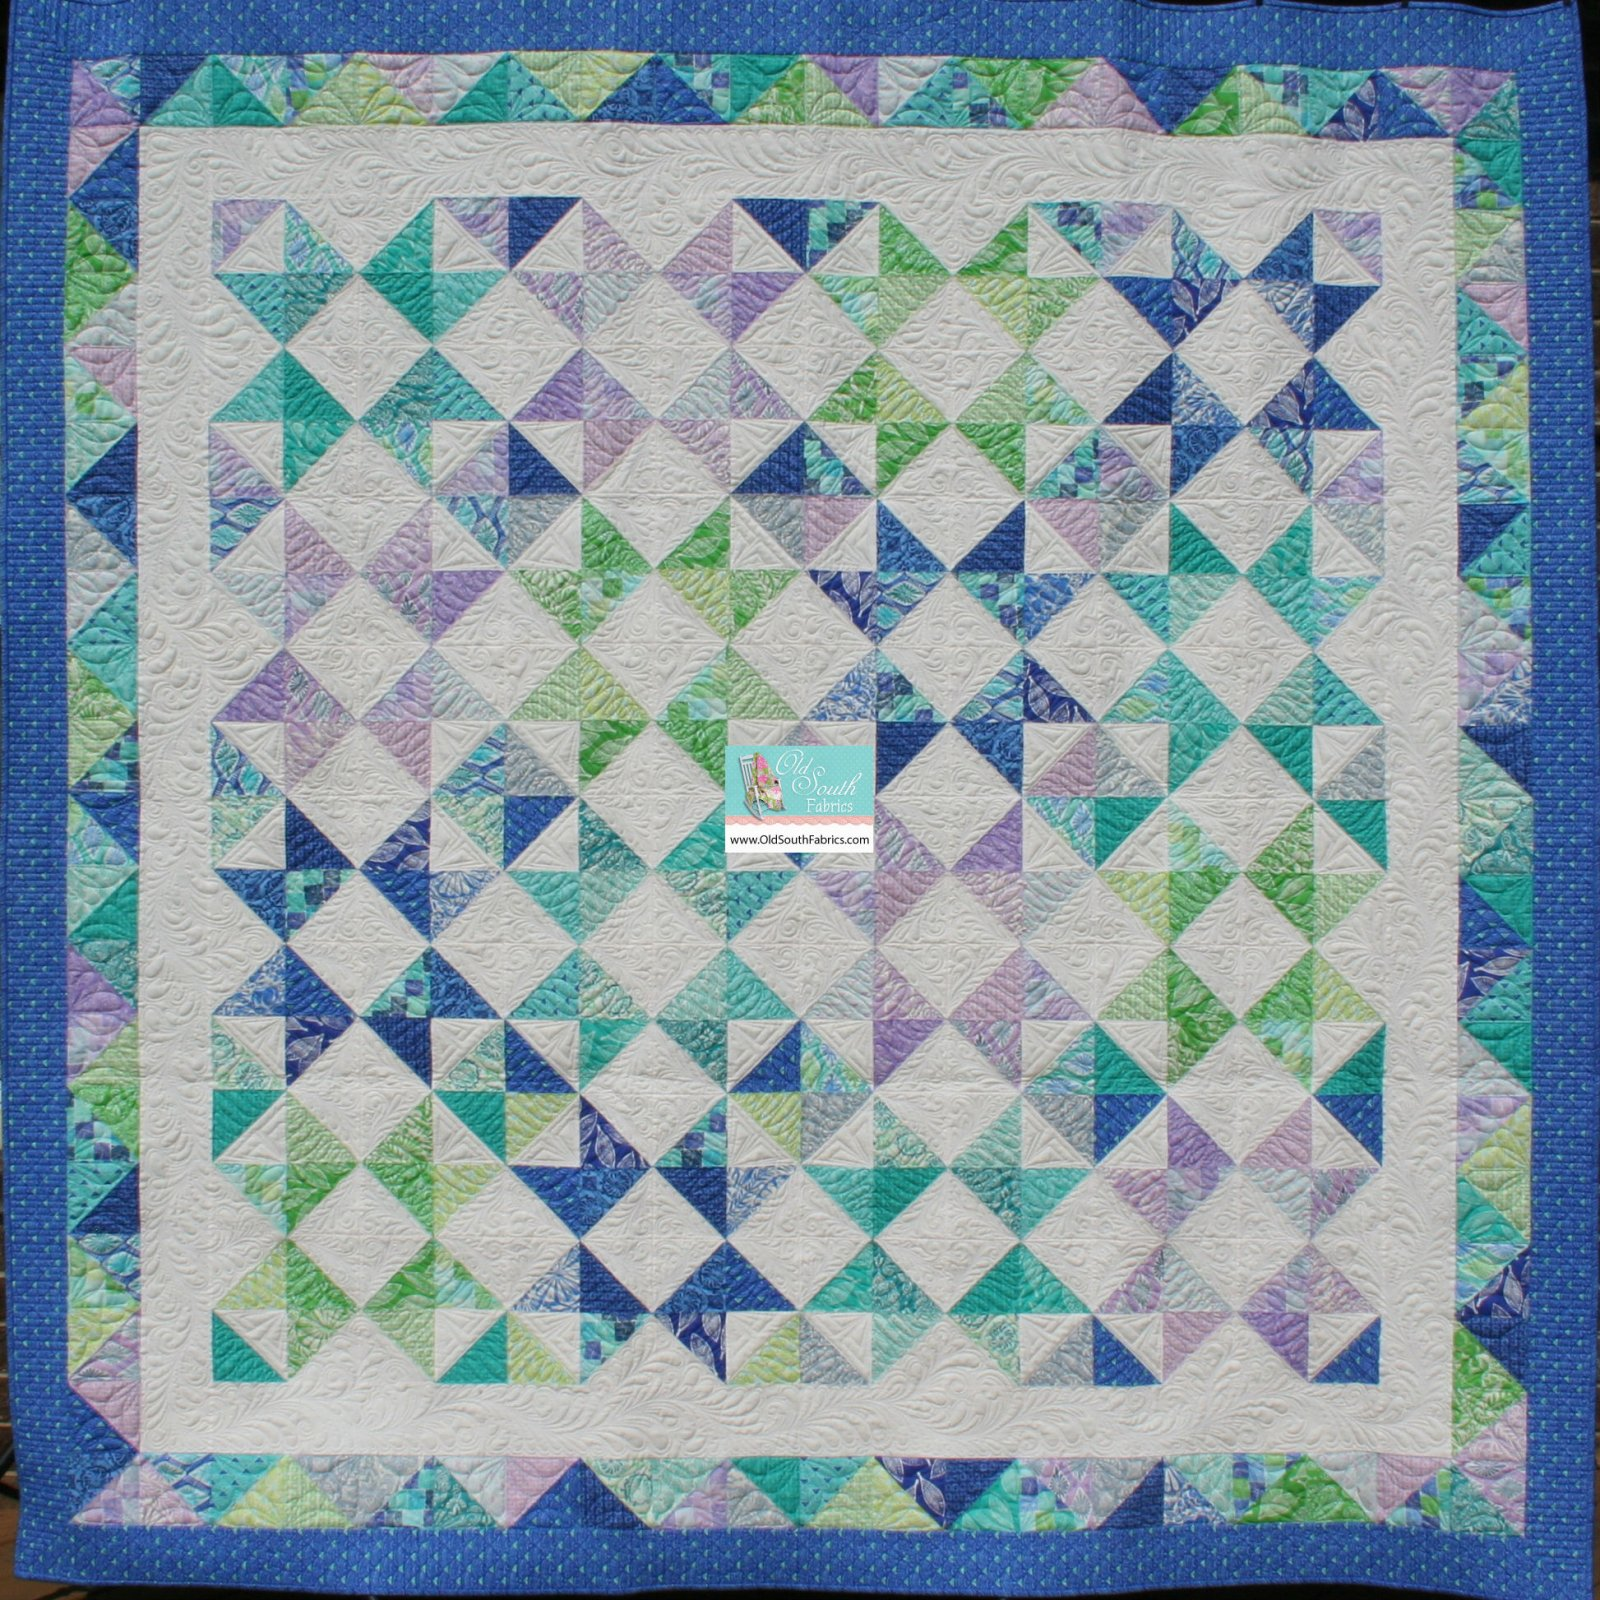 Horizon quilt kit fabric by kate spain for moda - Quilt rits ...